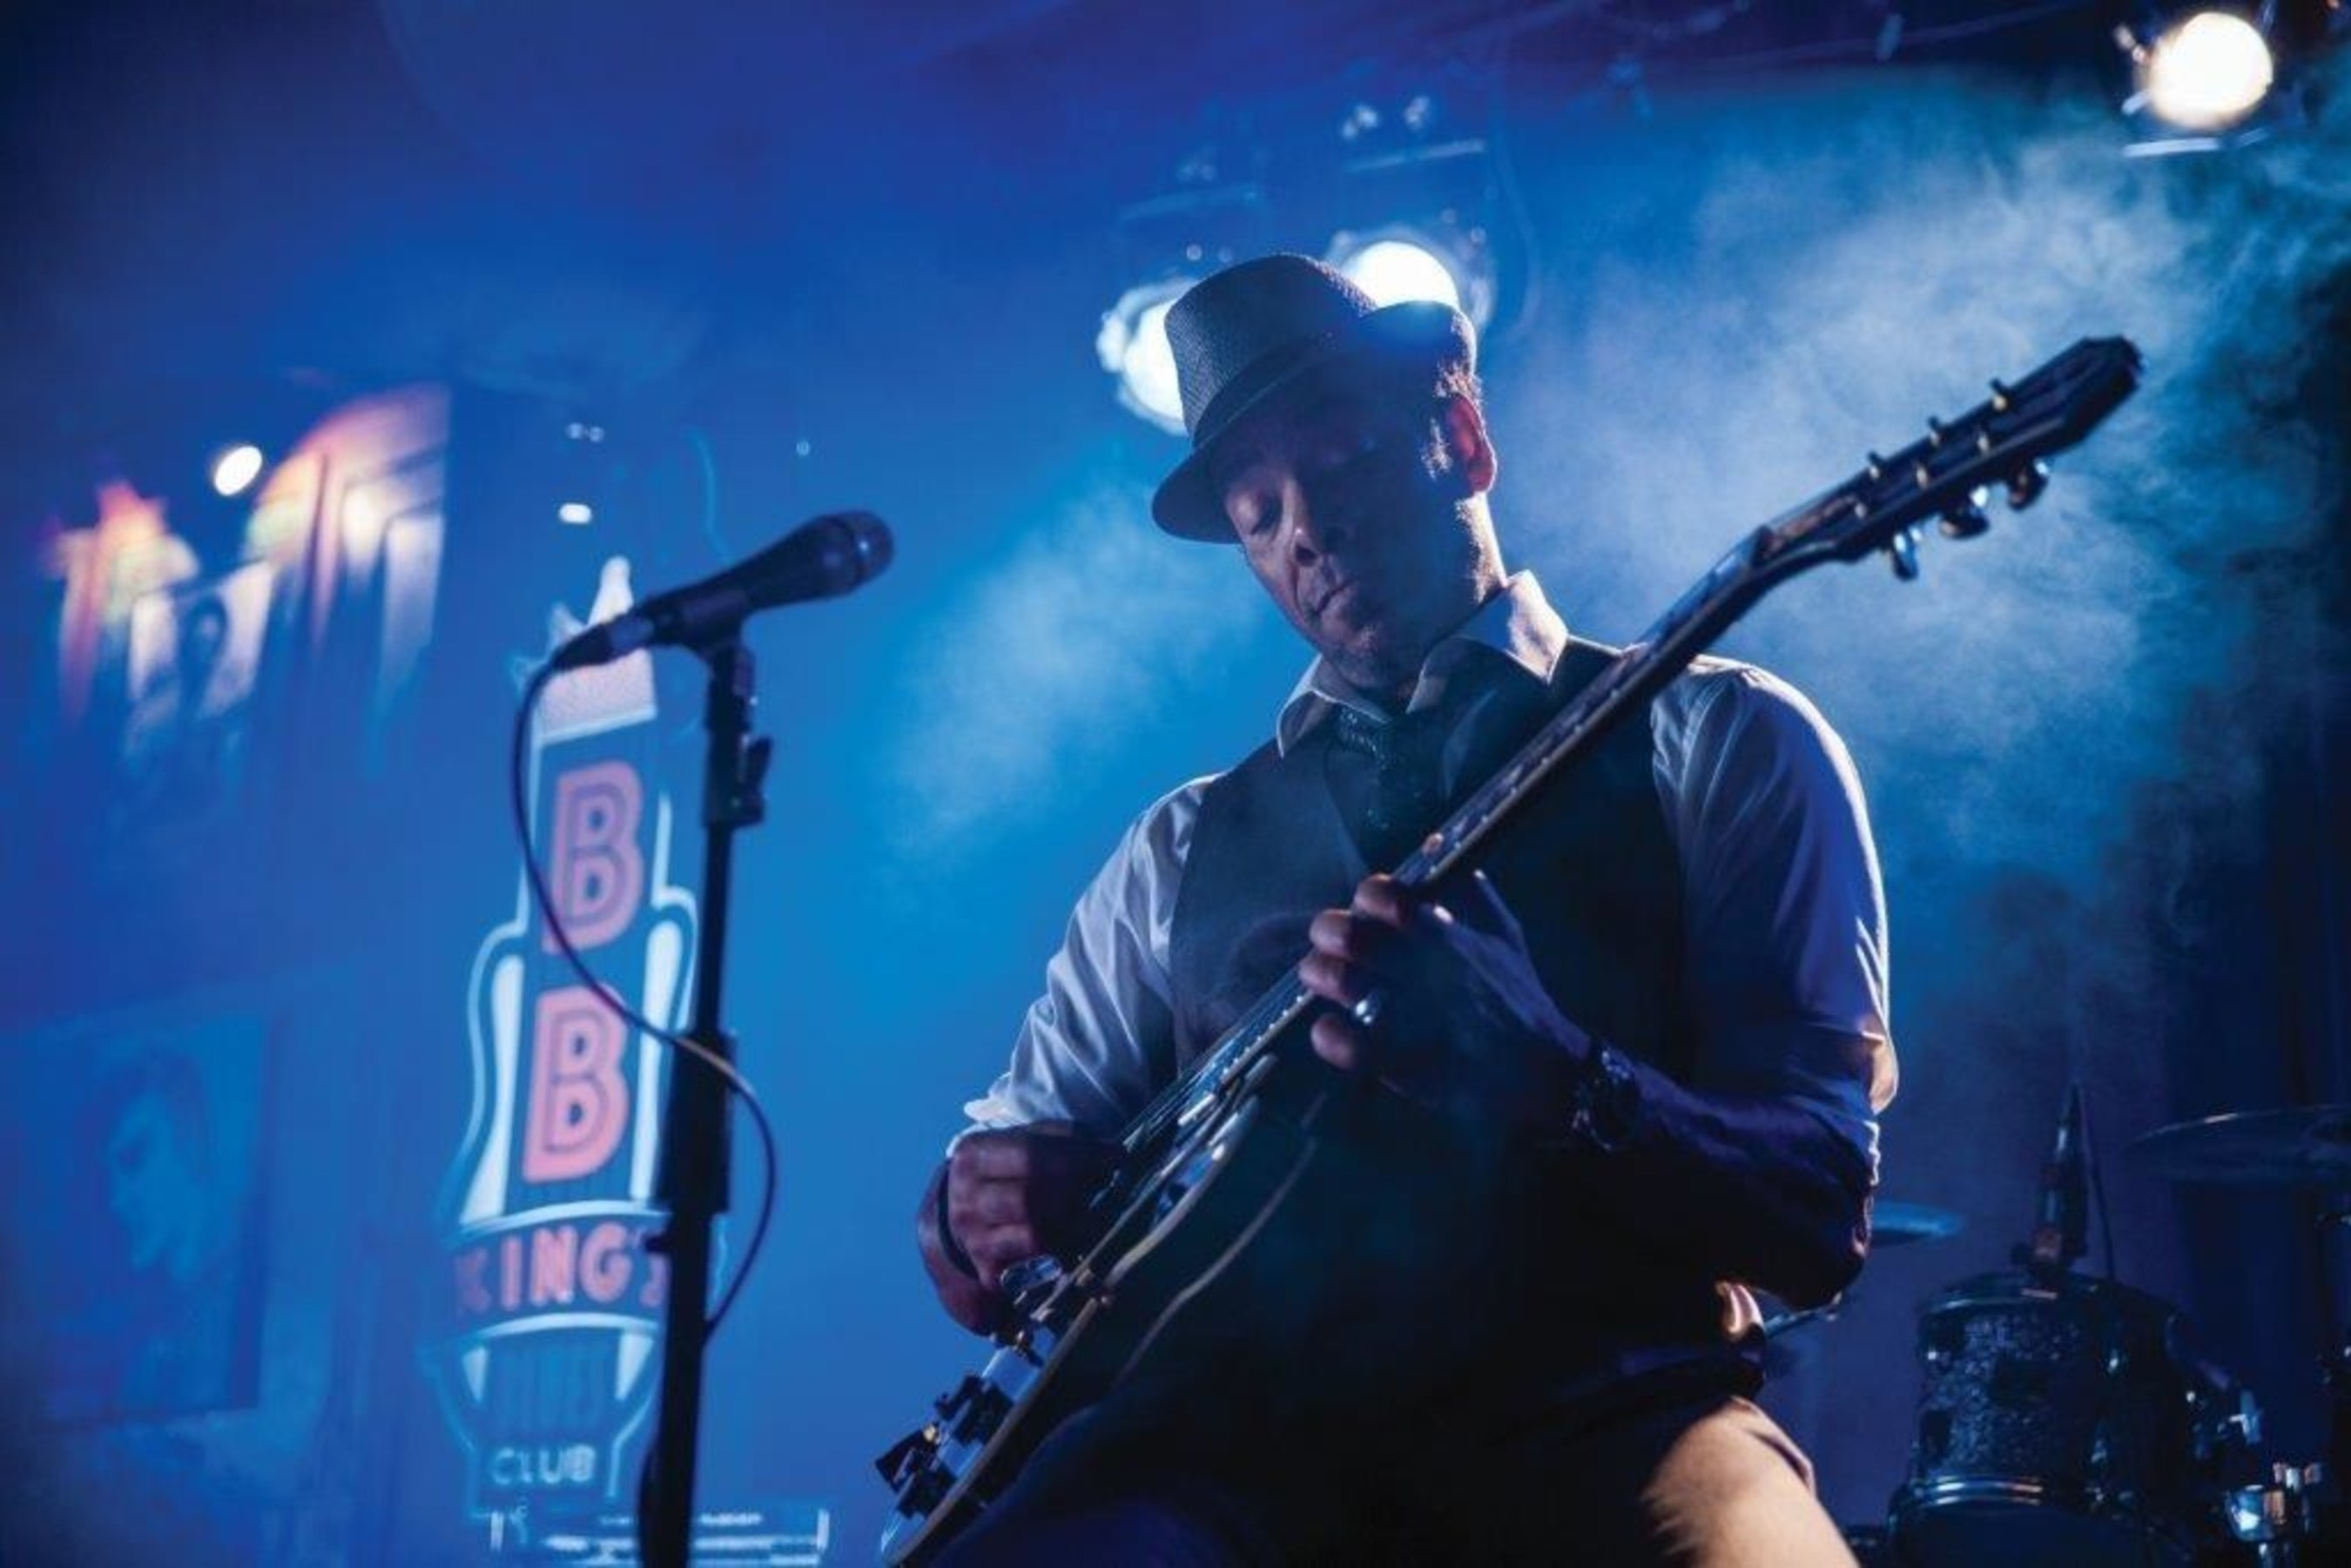 Guitarist Plays the Blues at Wind Creek